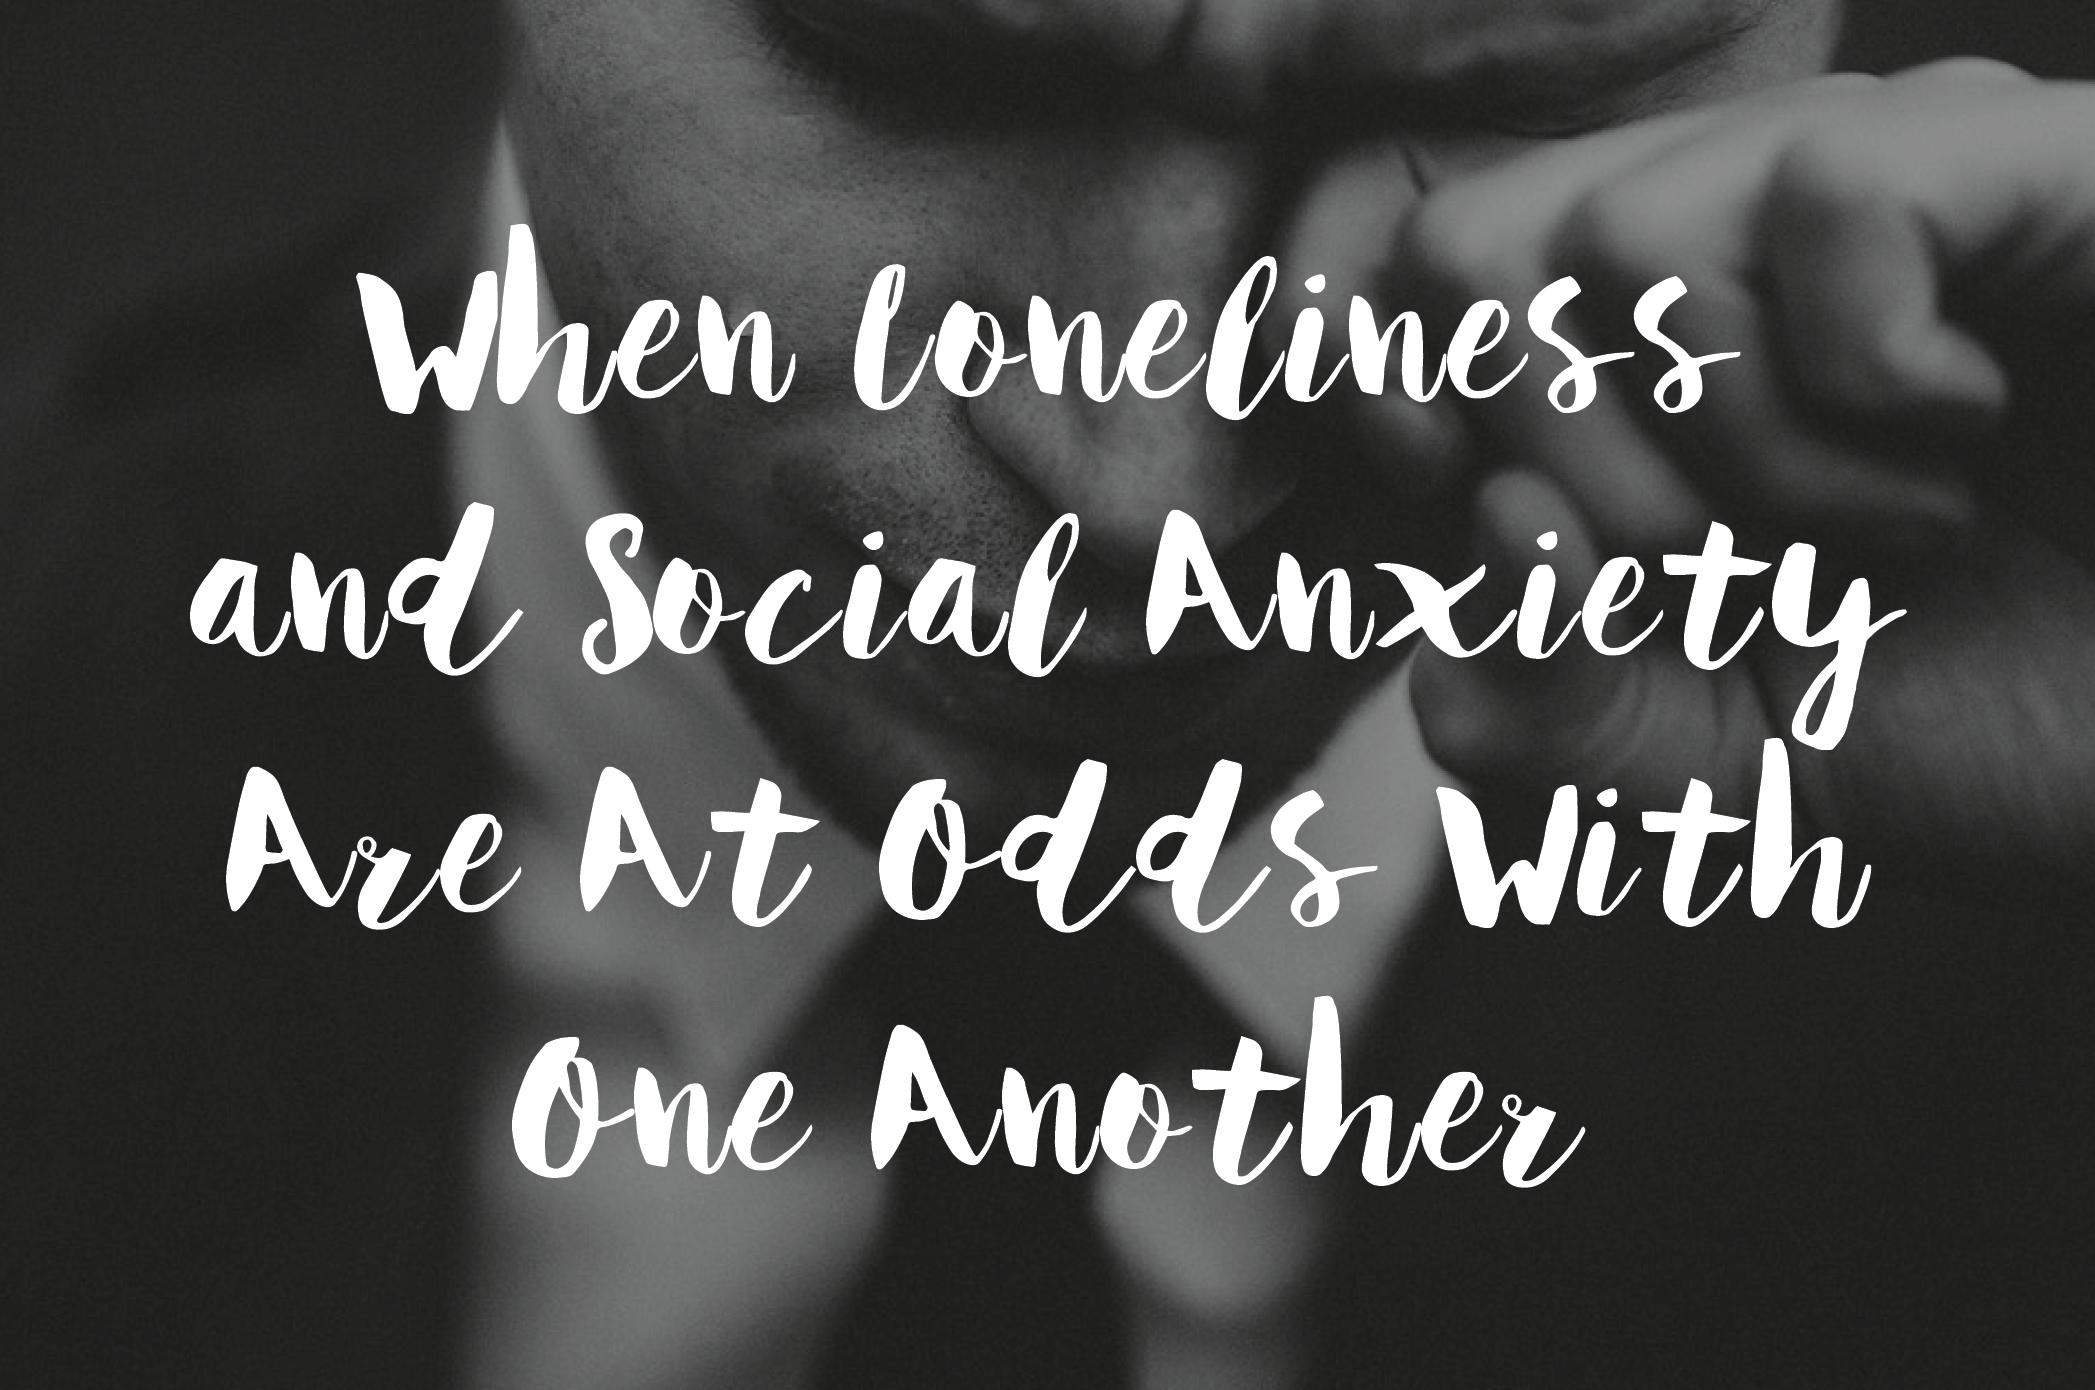 When Loneliness And Social Anxiety Are At Odds With One Another